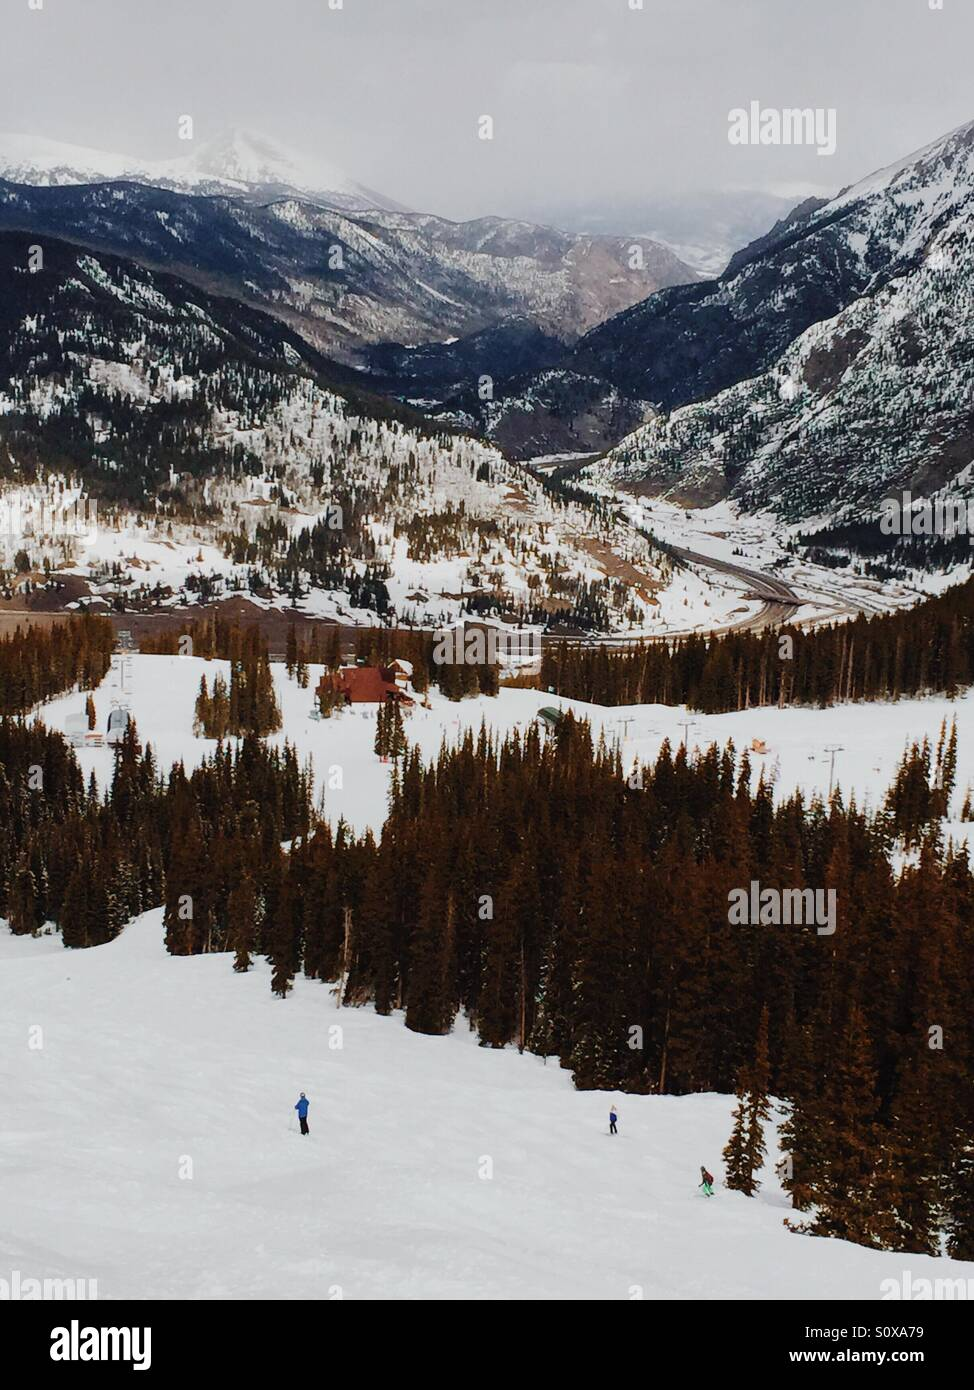 Copper Mountain Ski Area, Colorado. 9 March 2016 - Skiers navigate through moguls from the top of the Hallelujah - Stock Image